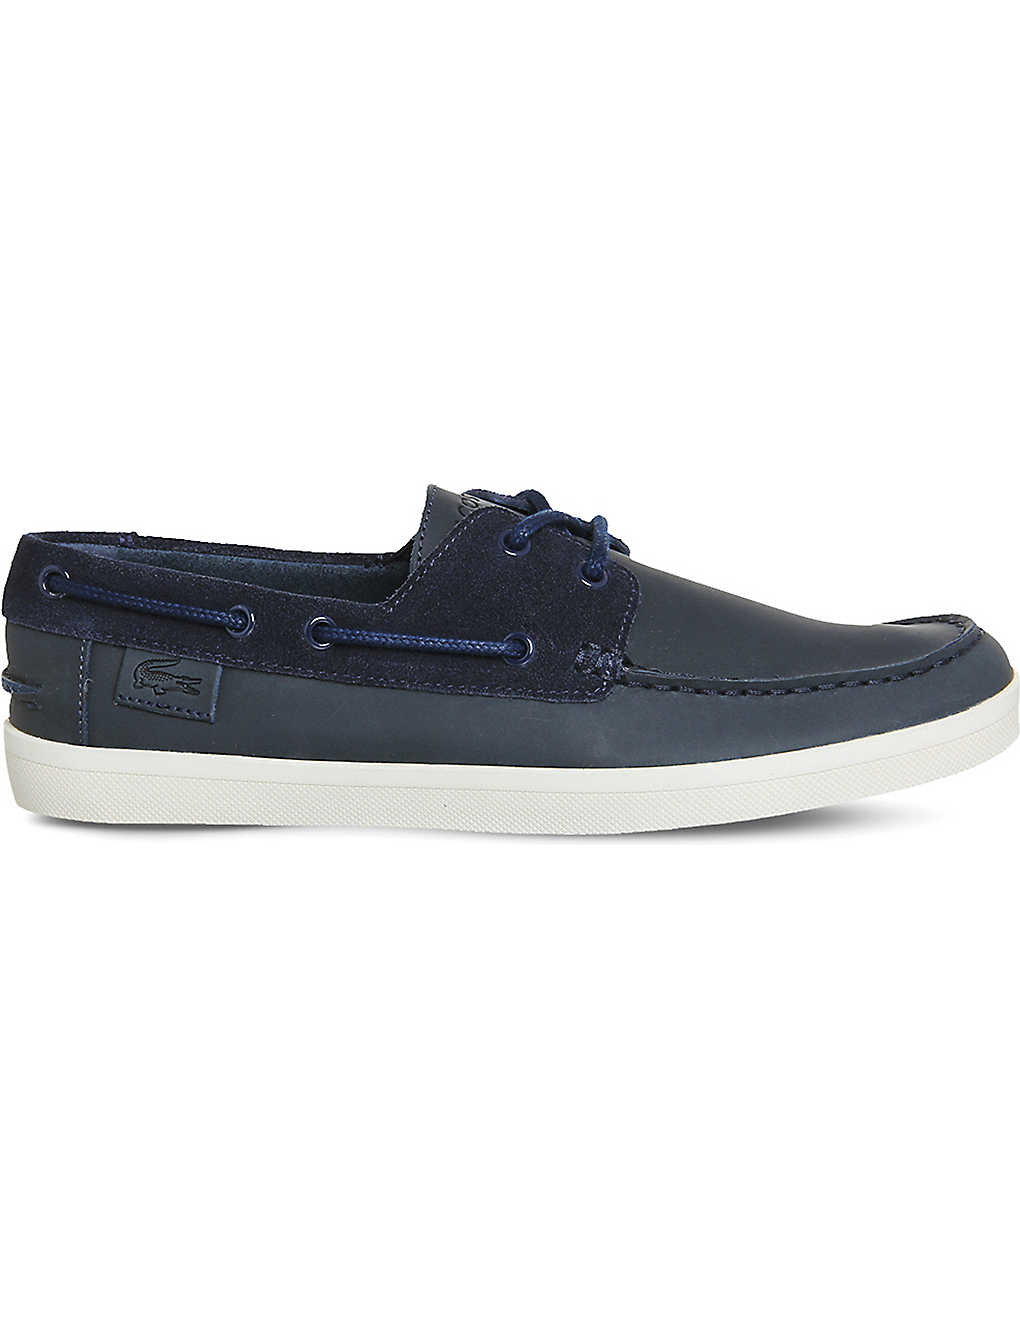 3815df471a92 LACOSTE - Keellson suede boat shoes